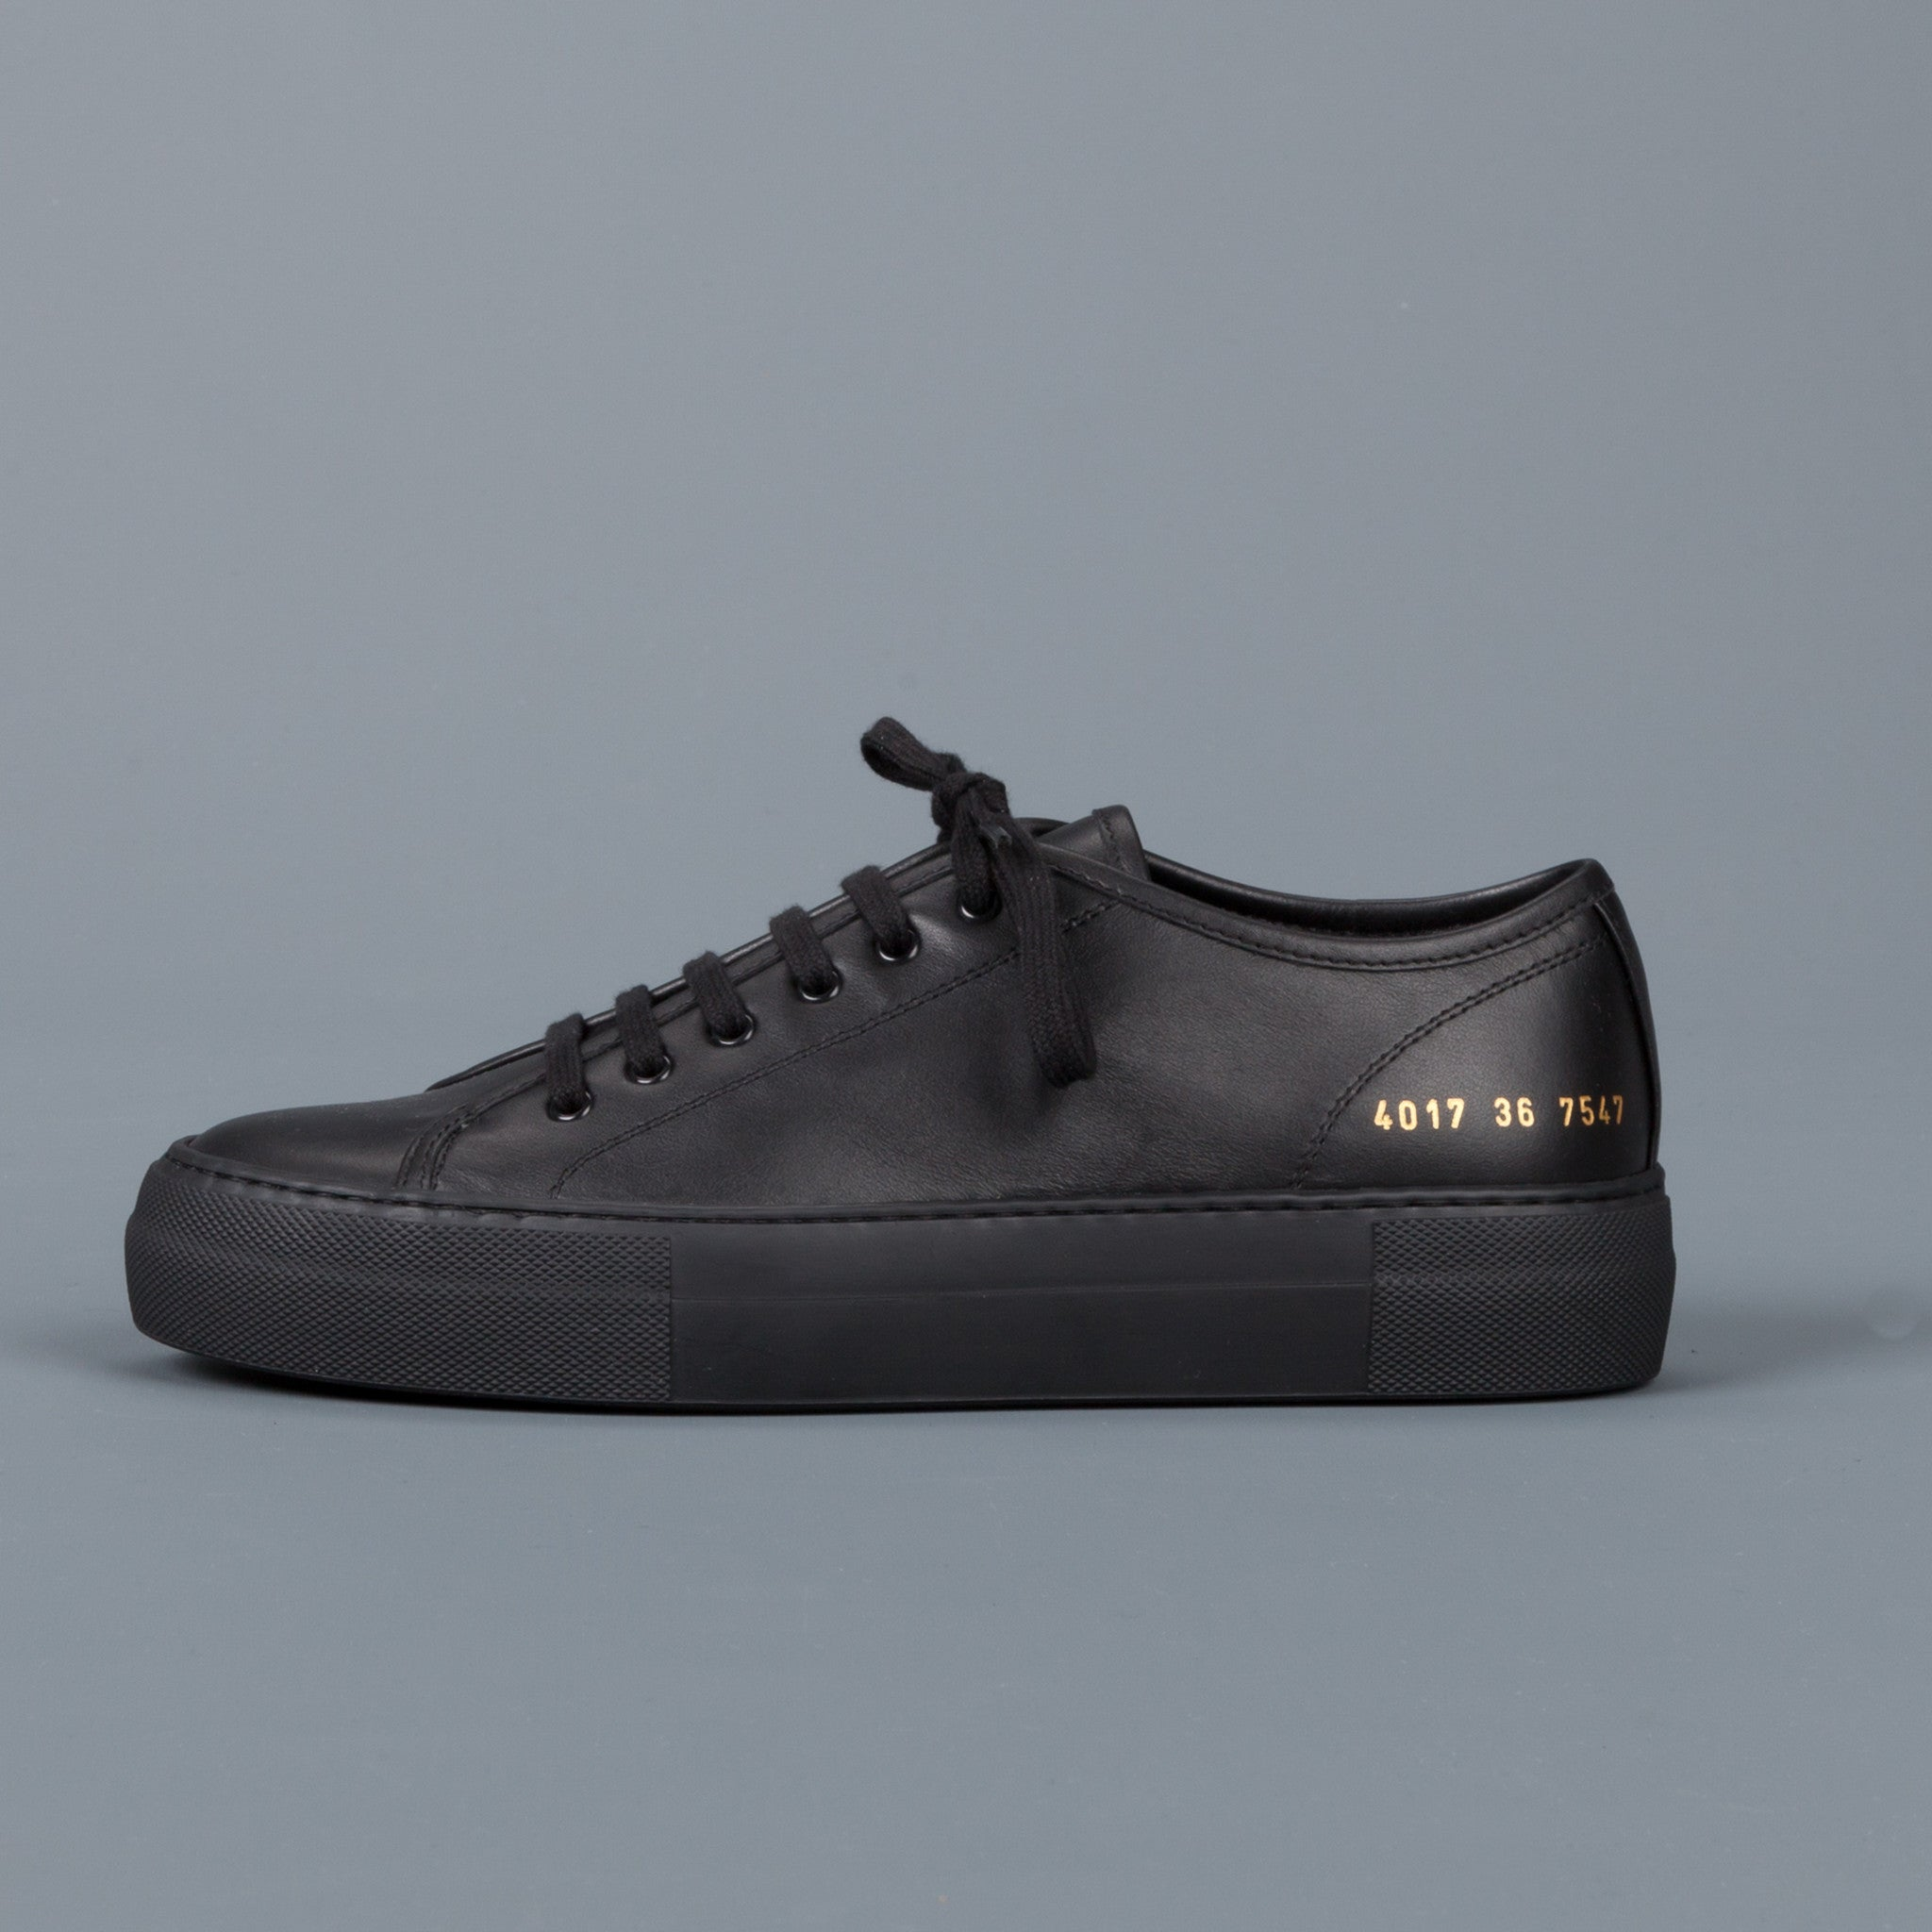 new woman by common projects tournament low super in leather black frans boone store. Black Bedroom Furniture Sets. Home Design Ideas